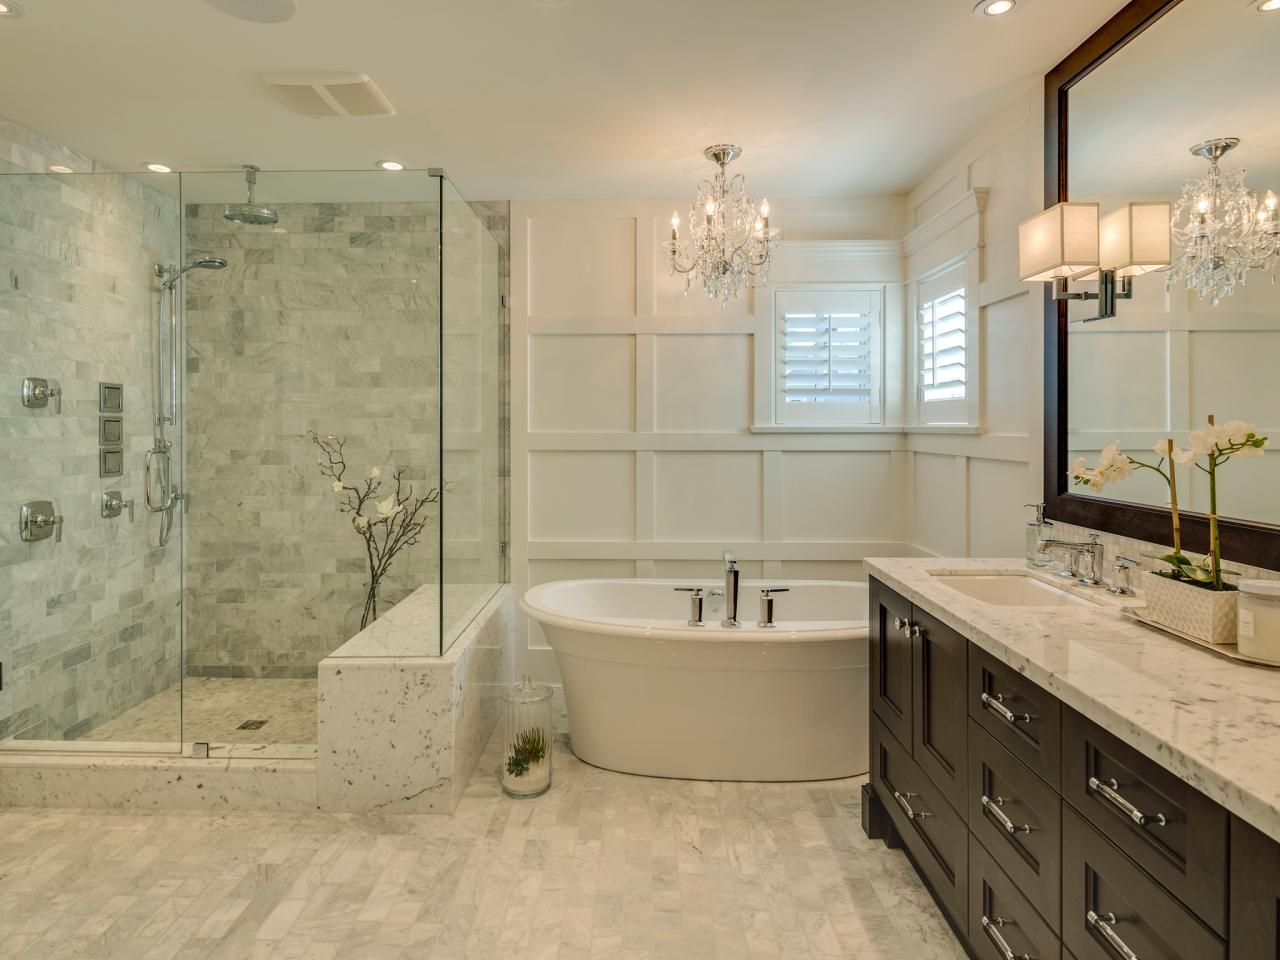 Splurge Or Save 16 Gorgeous Bath Updates For Any Budget In 2020 Bathroom Remodel Designs Bathroom Floor Plans Bathroom Trends